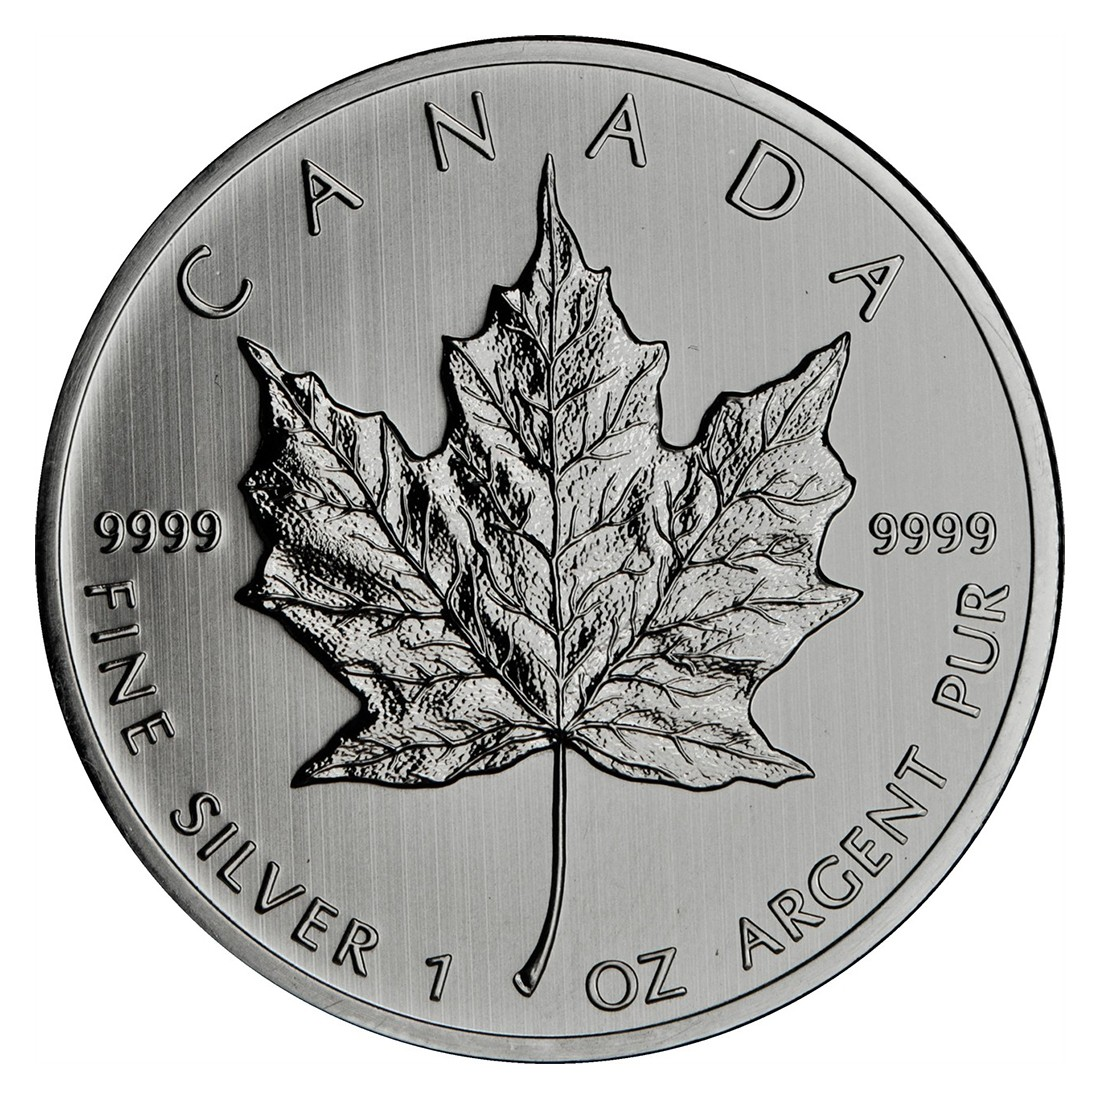 1oz Canadian Maple Leaf Silver Coin